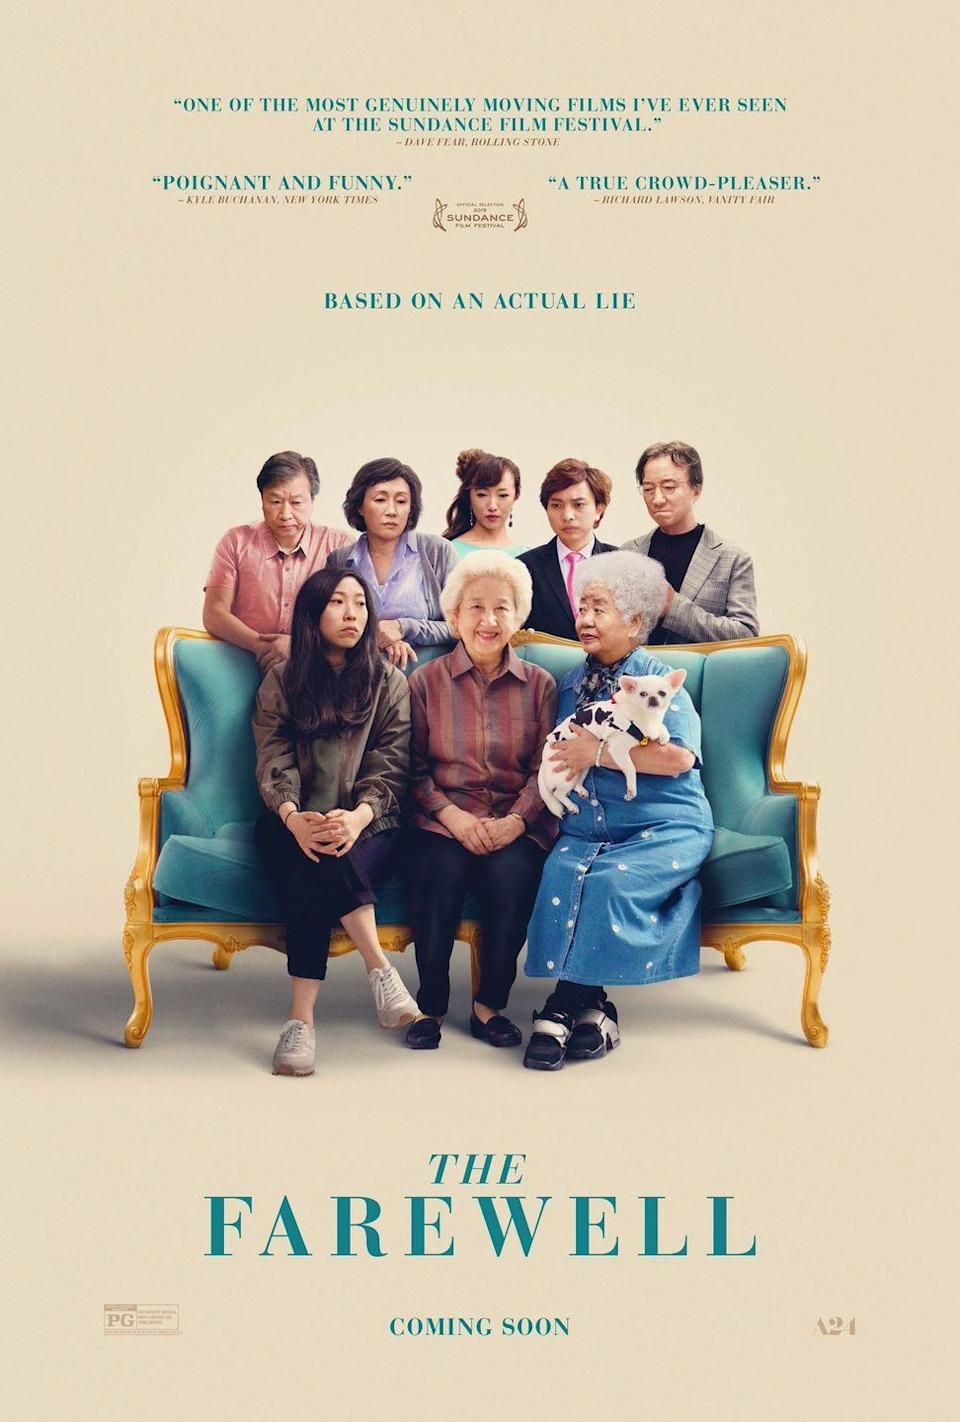 """<p><em>The Farewell</em> is (as you can see on the poster) """"based on an actual lie.""""Awkwafina stars as Billi, the granddaughter of a woman, Nai-Nai, whose family knows she only has weeks to live due to cancer. They try to protect Nai-Nai from the extent of her illness by not telling her about it. In a last effort to spend time with Nai-Nai and ensure her happiness, the whole family gets together for an impromptu wedding celebration.<br></p><p><a class=""""link rapid-noclick-resp"""" href=""""https://www.amazon.com/dp/B07V4TH3M5/?ref=dvm_us_dl_sl_go_smd_20TF%7Cm_gRL2qYPRc_c418179654619&gclid=Cj0KCQjwvr6EBhDOARIsAPpqUPGnZkeijEX3-5jRYXfdtNylyJHI14N5XxZFPW8zpGAsMmiugpk7XkwaAn-nEALw_wcB&tag=syn-yahoo-20&ascsubtag=%5Bartid%7C2140.g.27486022%5Bsrc%7Cyahoo-us"""" rel=""""nofollow noopener"""" target=""""_blank"""" data-ylk=""""slk:Watch Here"""">Watch Here</a></p>"""